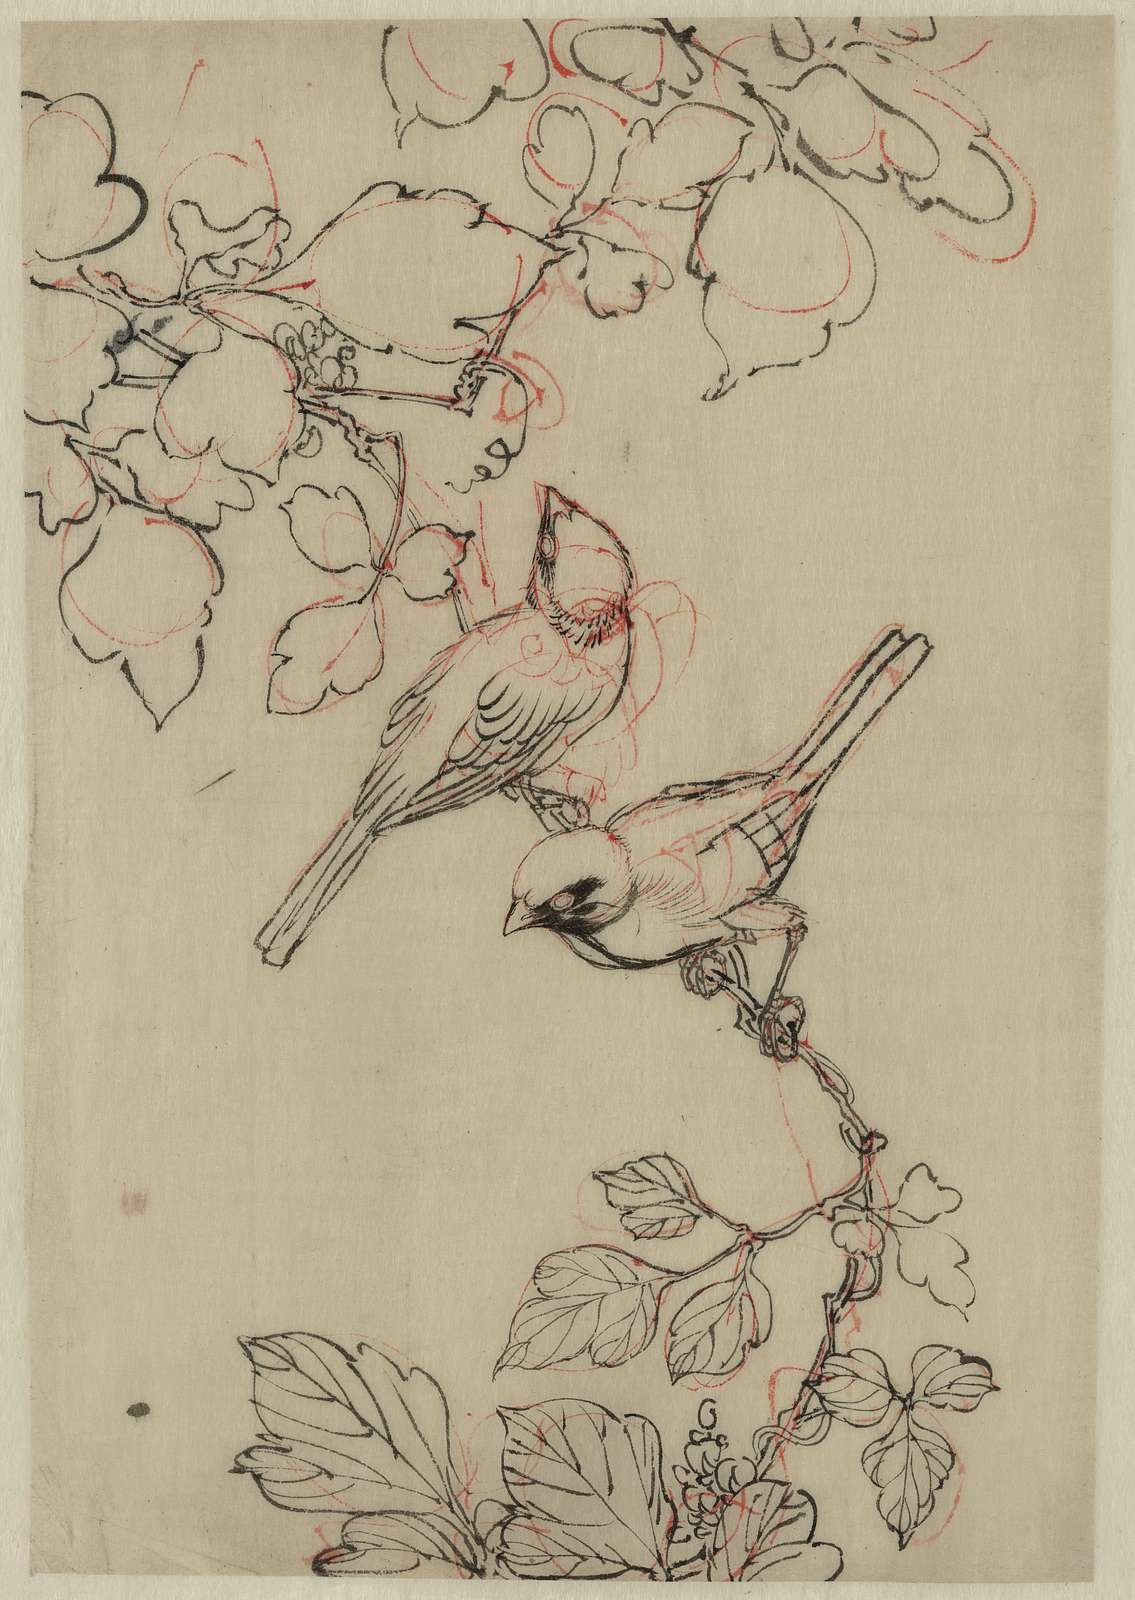 [Two birds perched on grapevines]